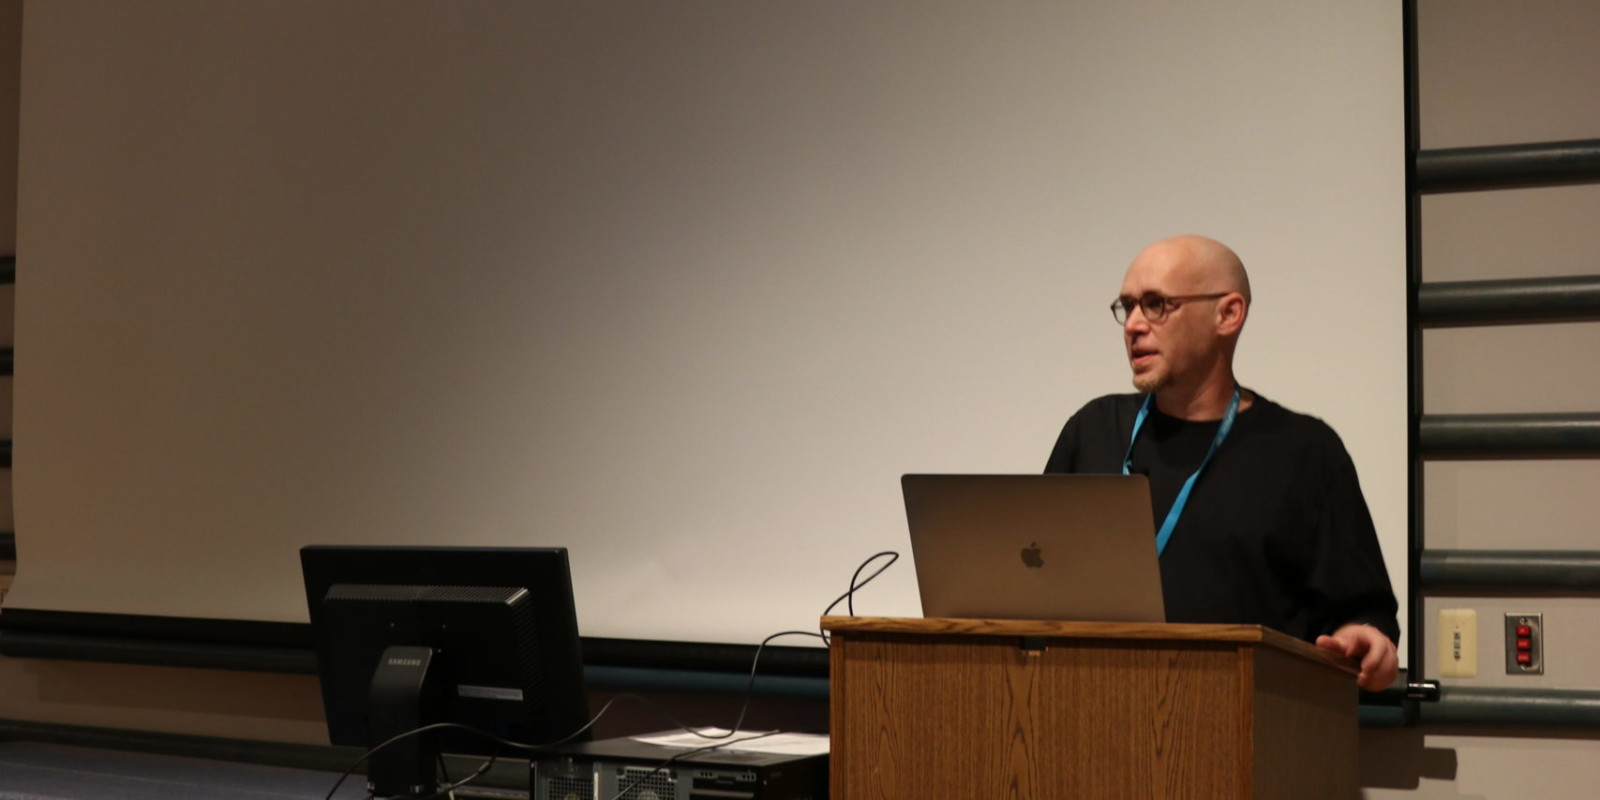 Corey Brown at WordCamp 2018